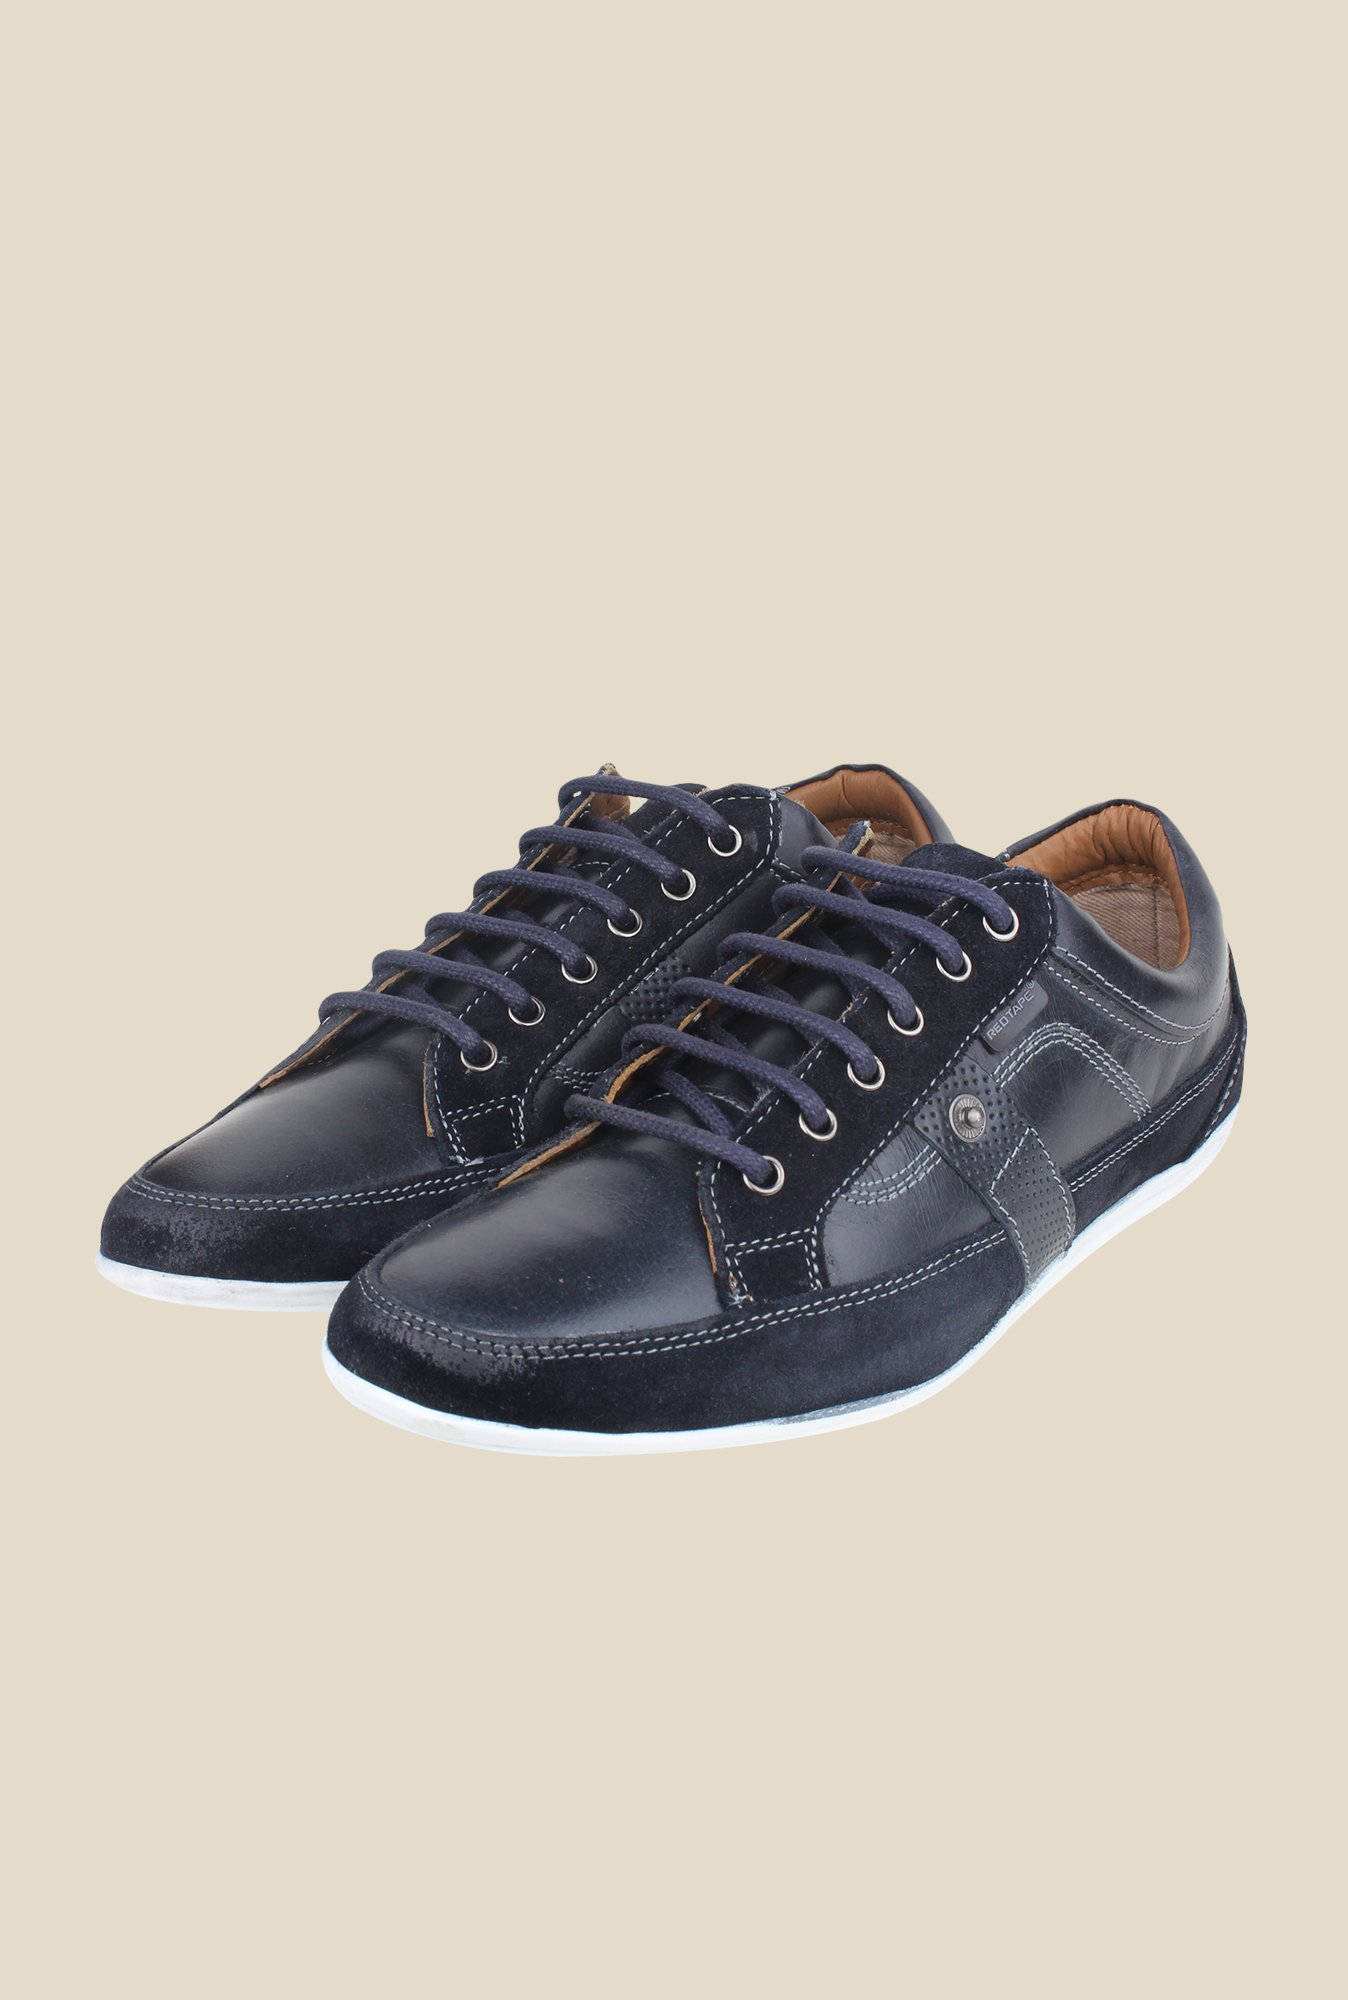 Red Tape Navy Casual Shoes